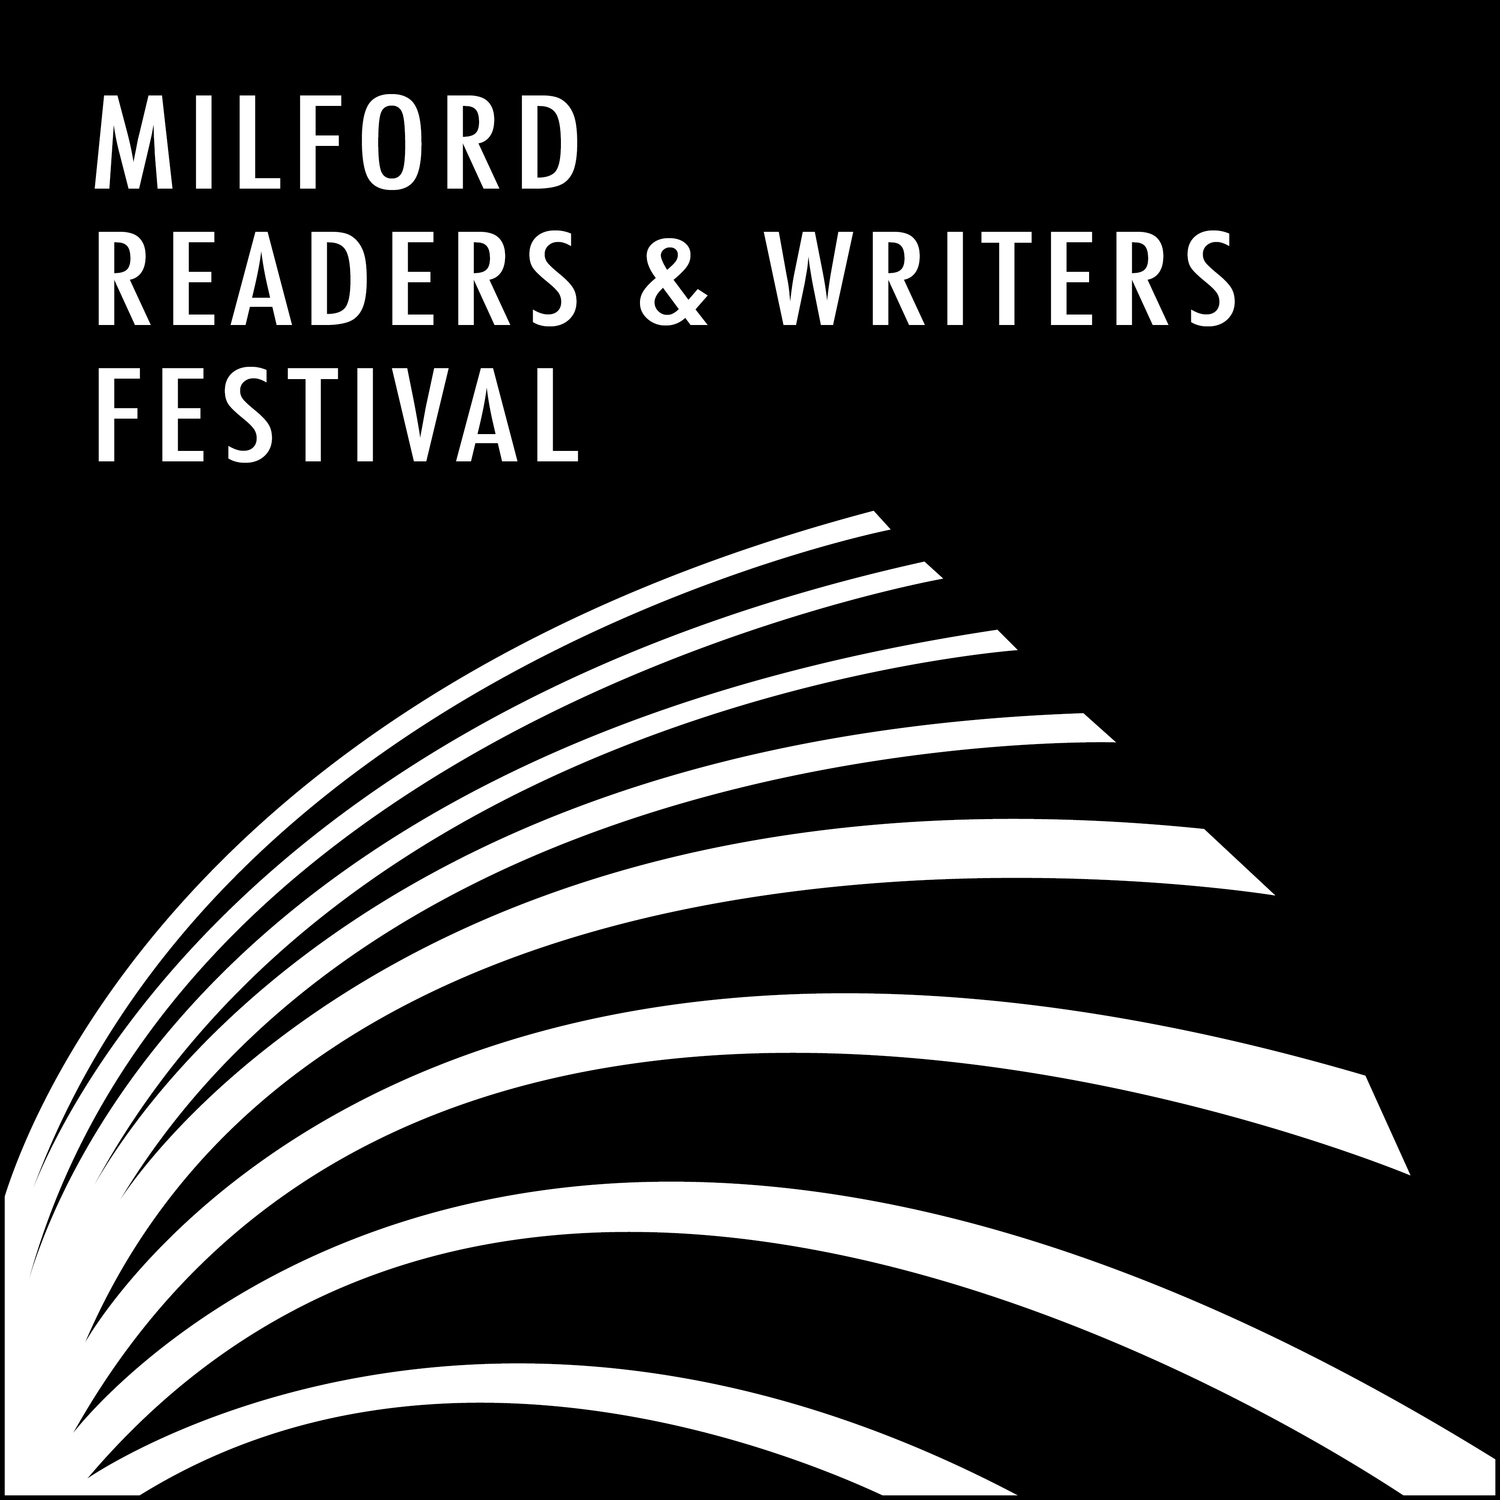 Milford Readers & Writers Festival